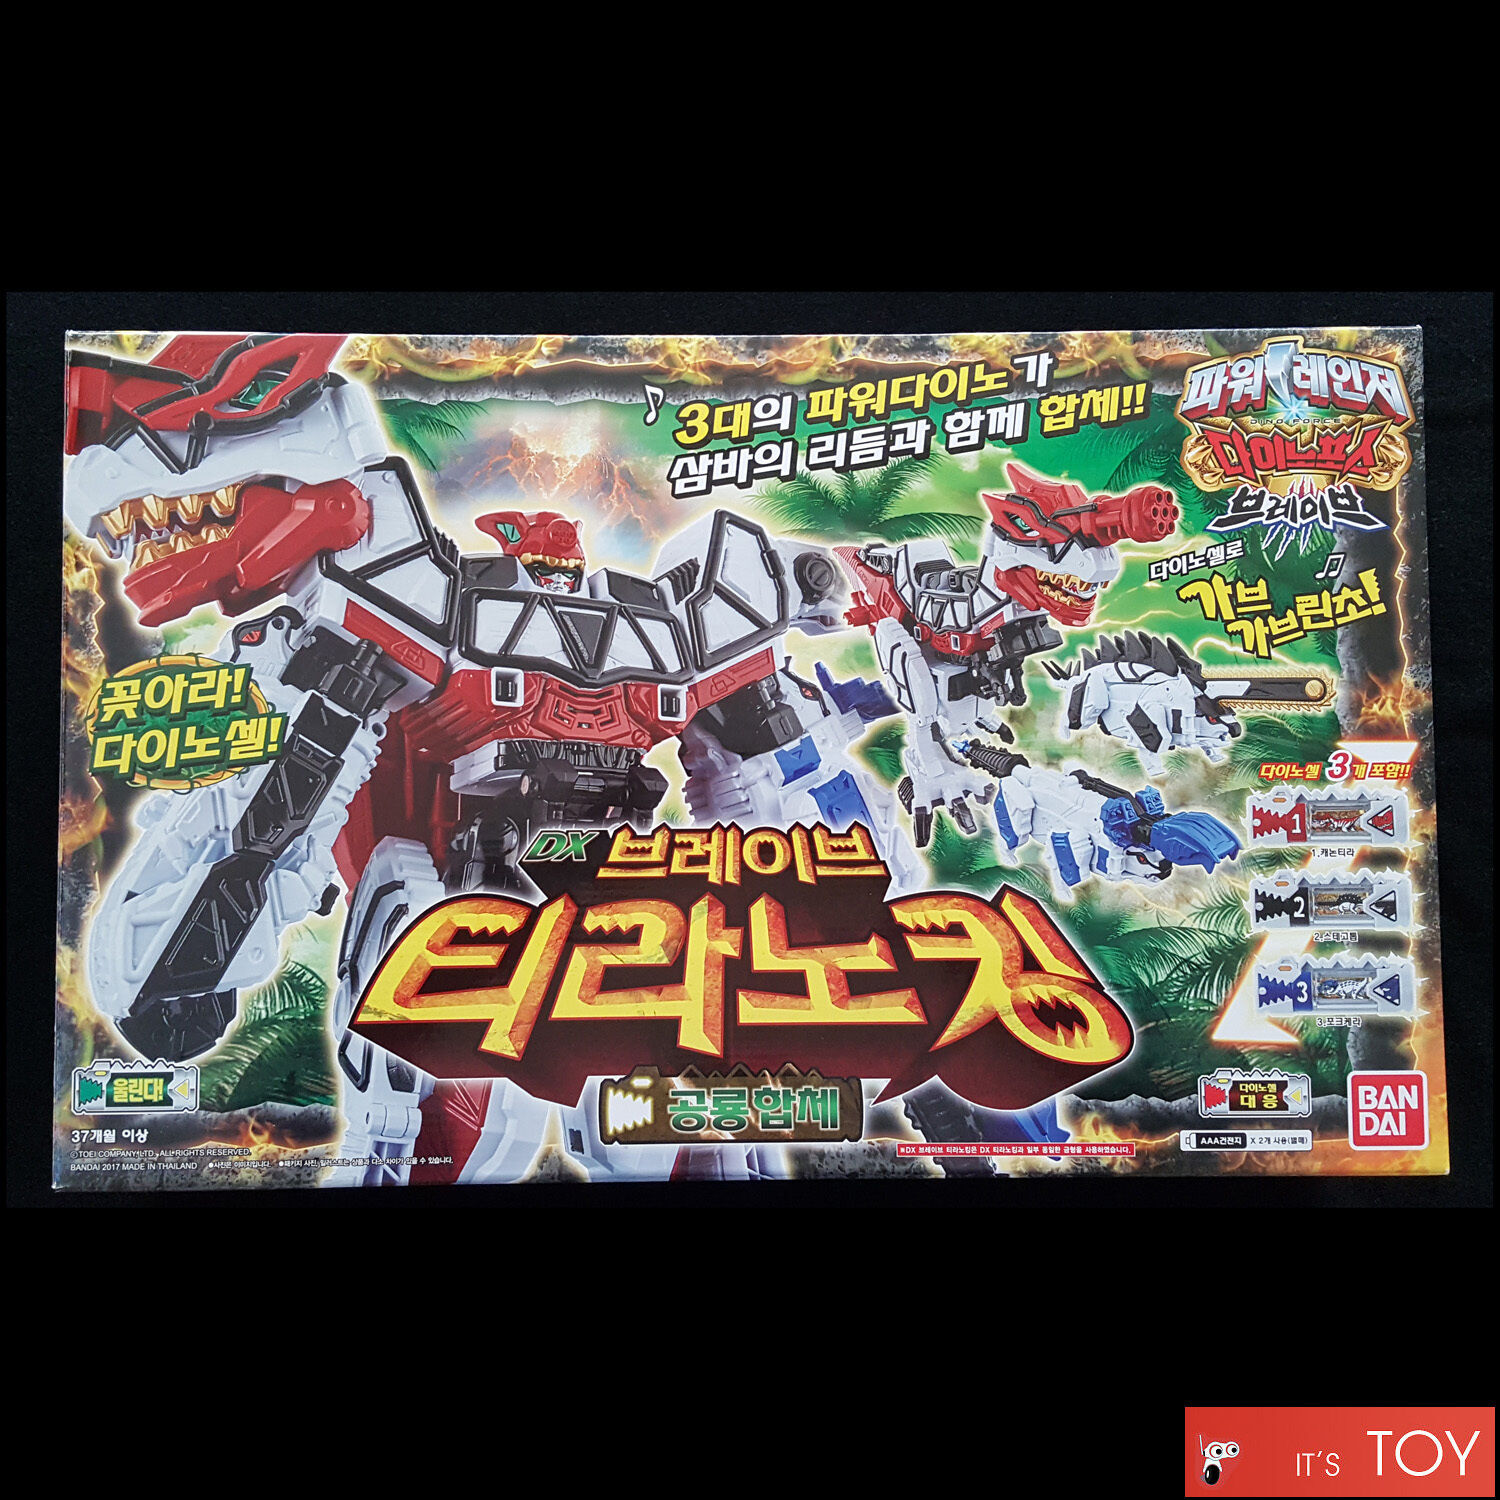 Power Ranger Kyoryuger Dino Force DX BRAVE KYORYUJIN Tyranno King Bandai Korea